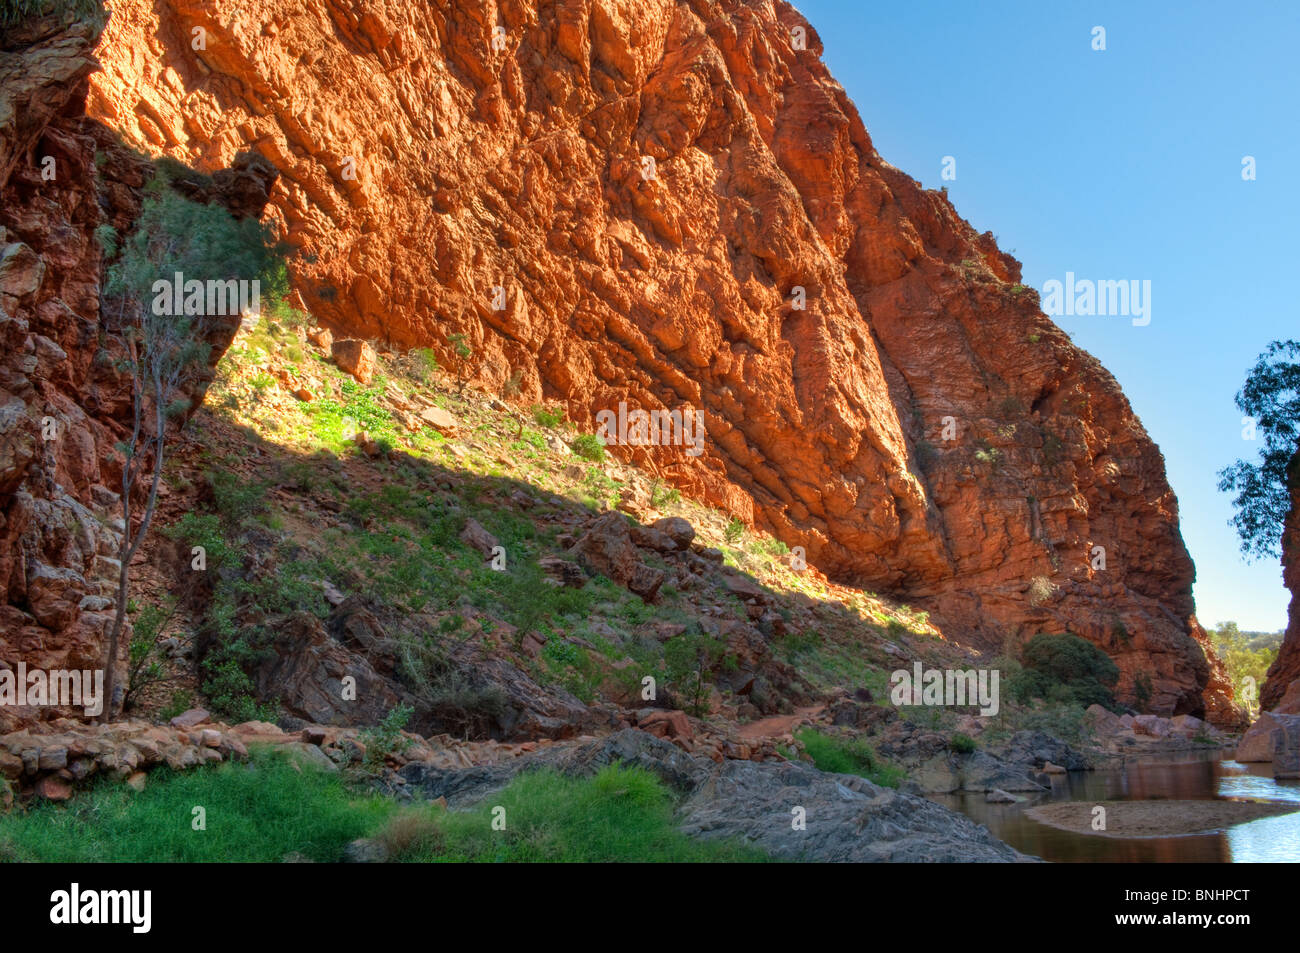 Simpson's Gap, West MacDonnell National Park, near Alice Springs, Northern Territory, Central Australia - Stock Image